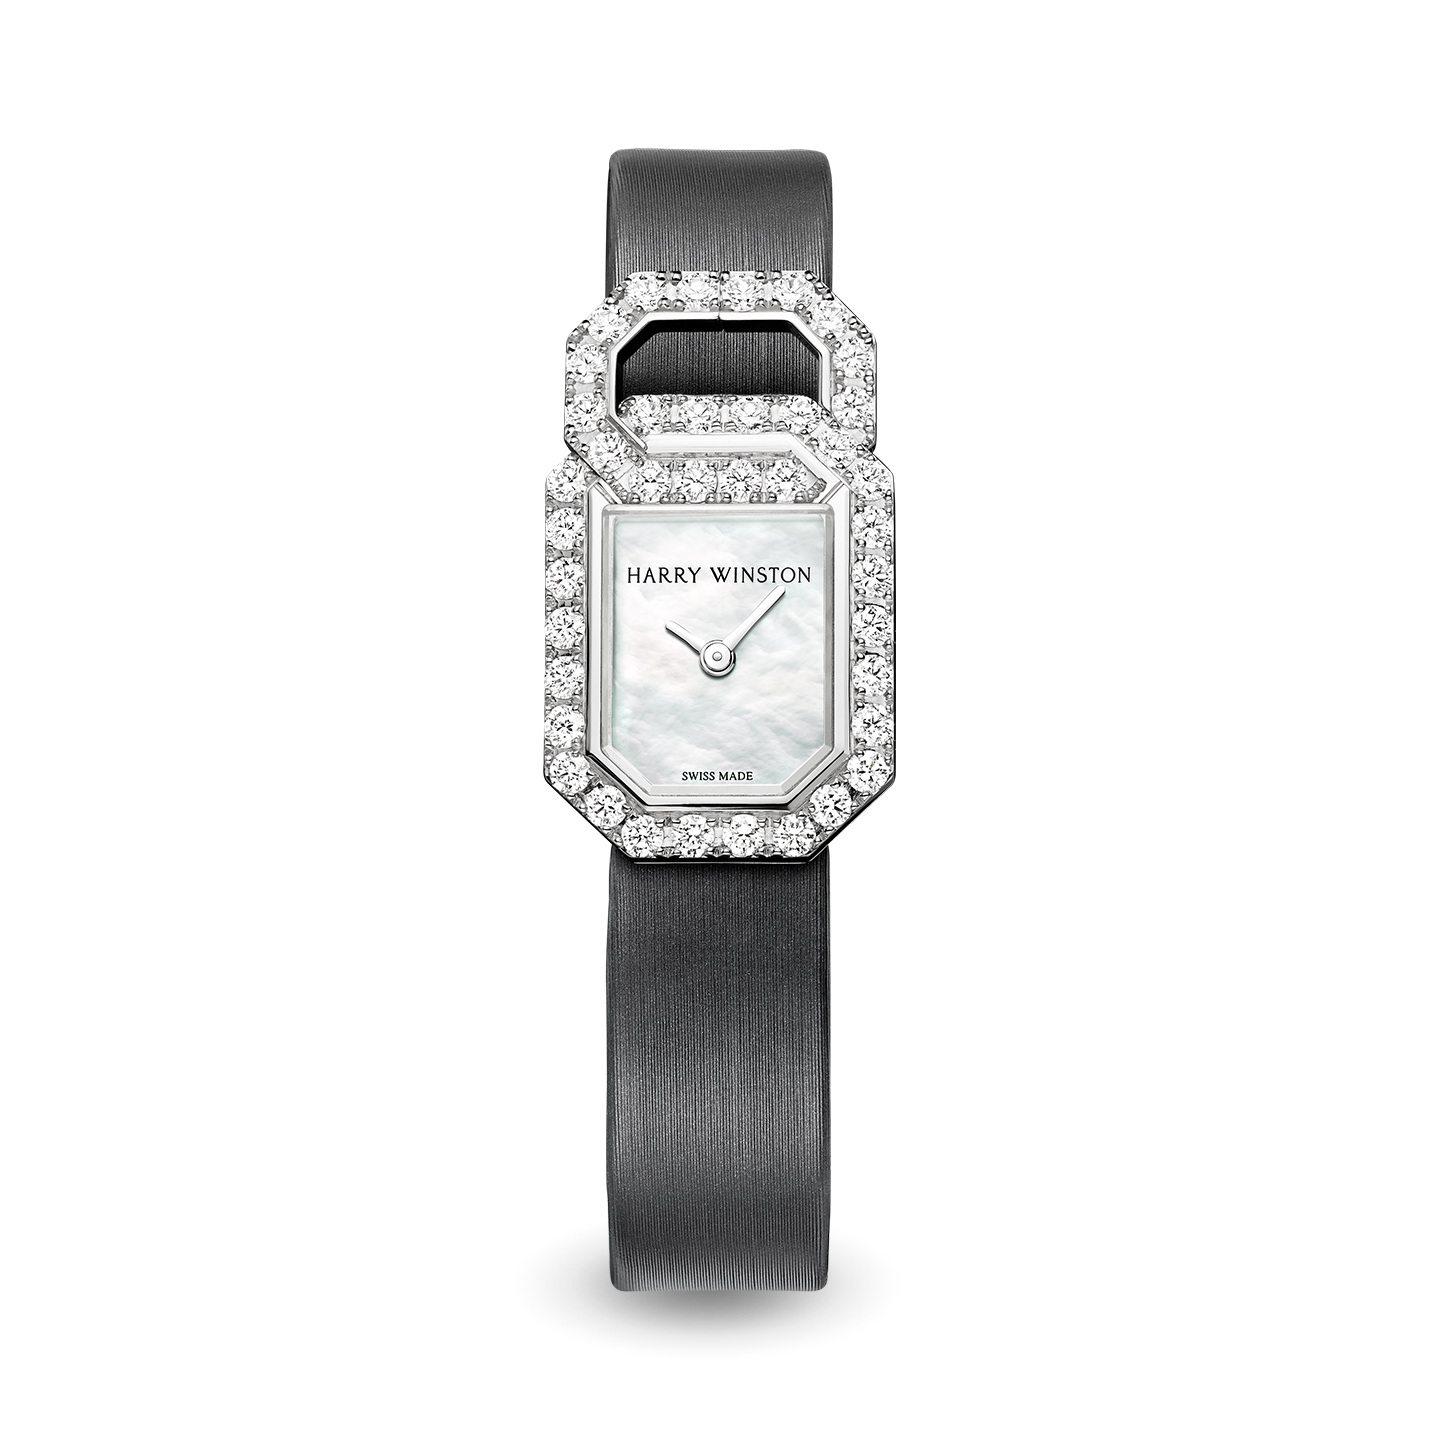 Links Signature by Harry Winston, product image 1